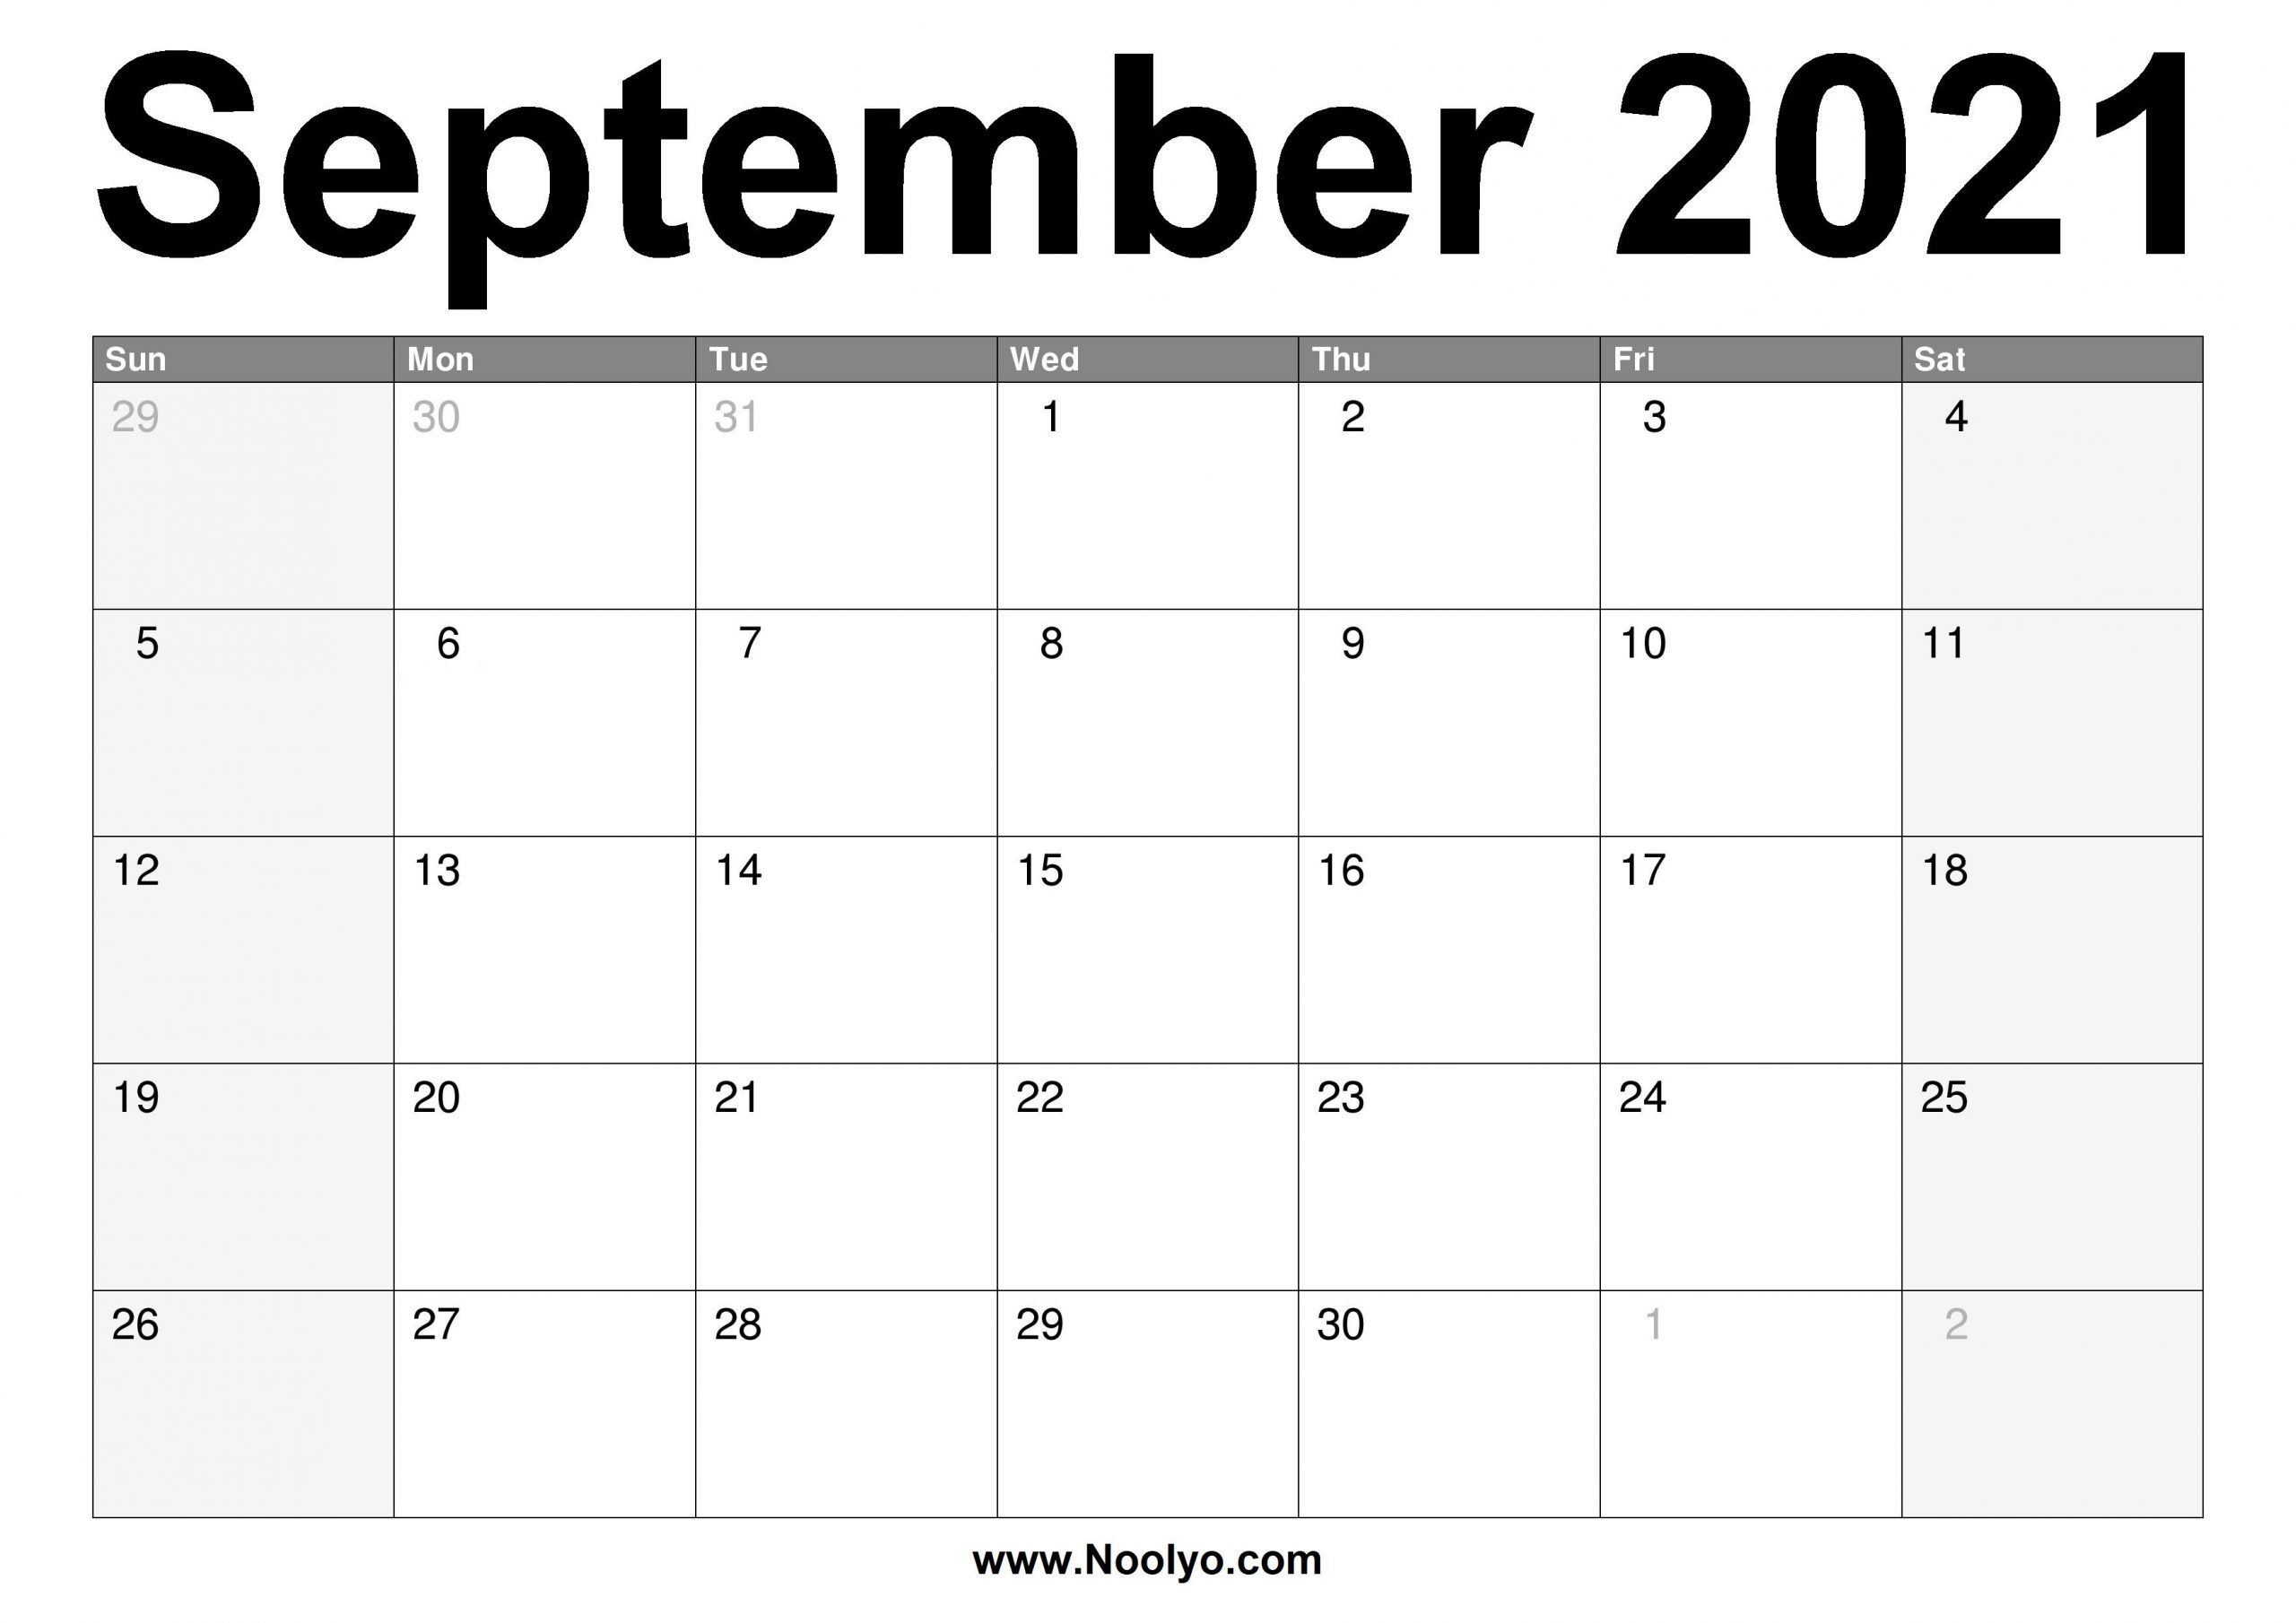 September 2021 Calendar Printable - Free Download - Noolyo